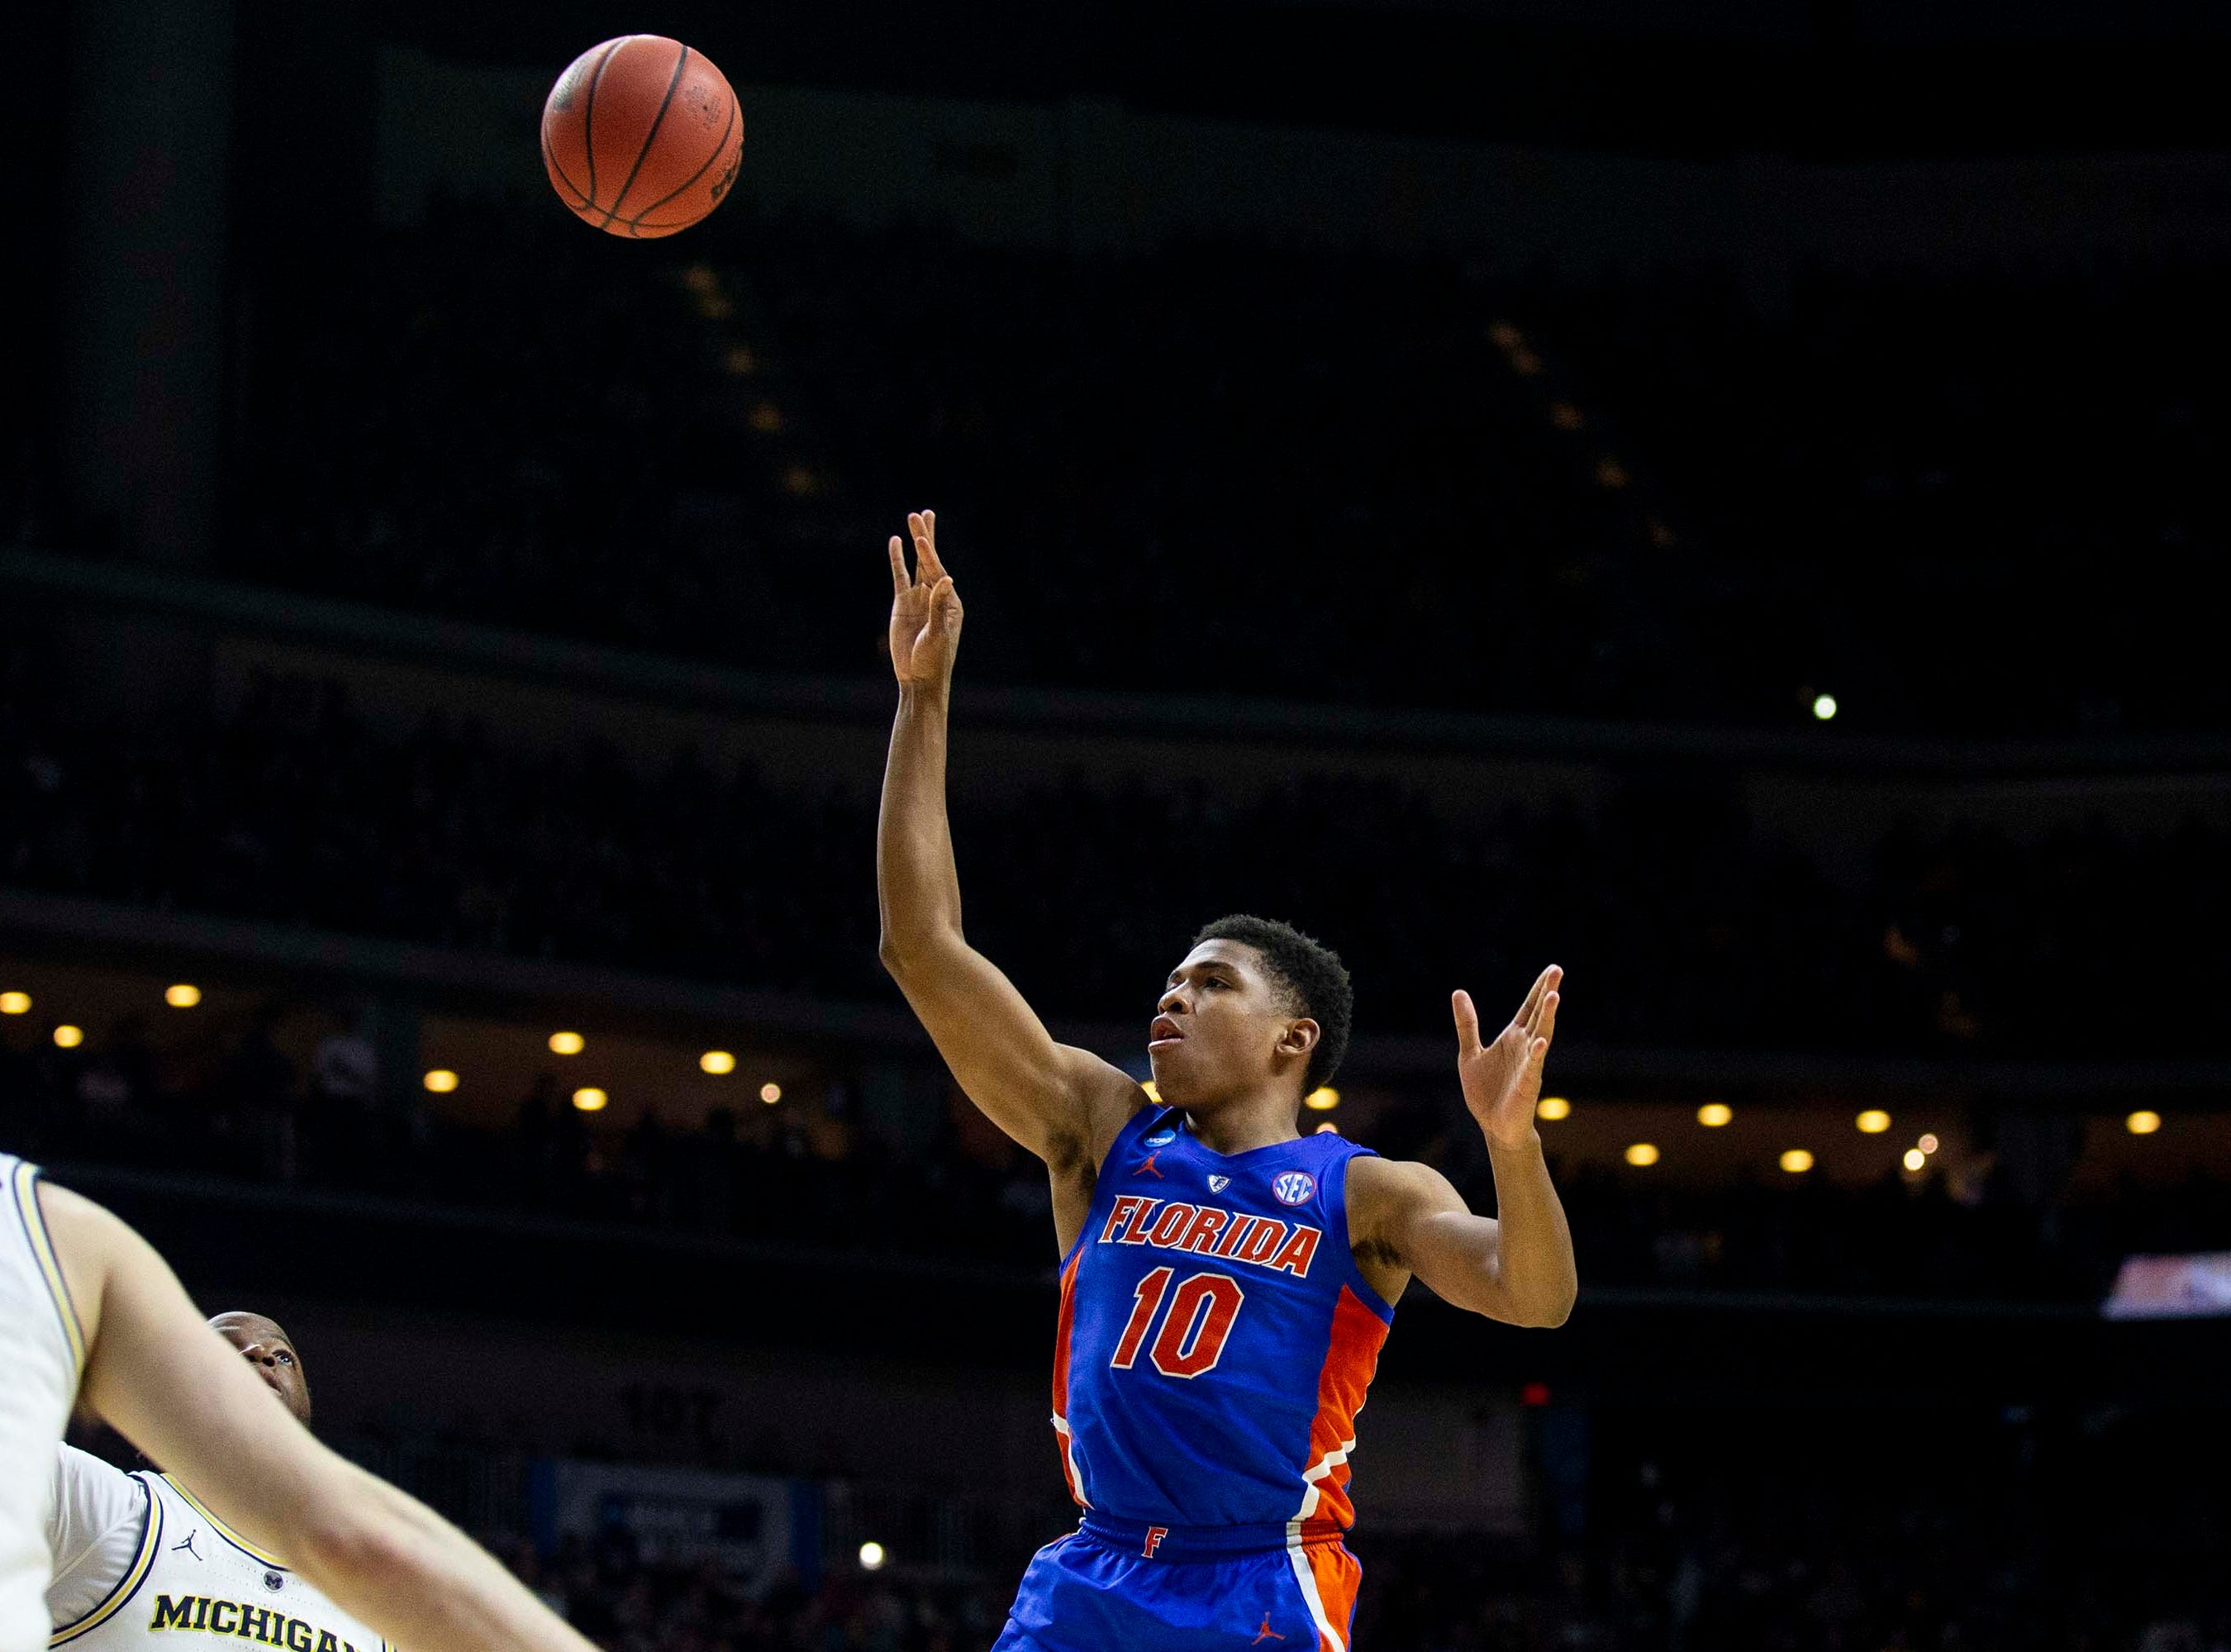 Florida's Noah Locke shoots the ball during the NCAA Tournament second-round match-up between Michigan and Florida on Saturday, March 23, 2019, in Wells Fargo Arena in Des Moines, Iowa.